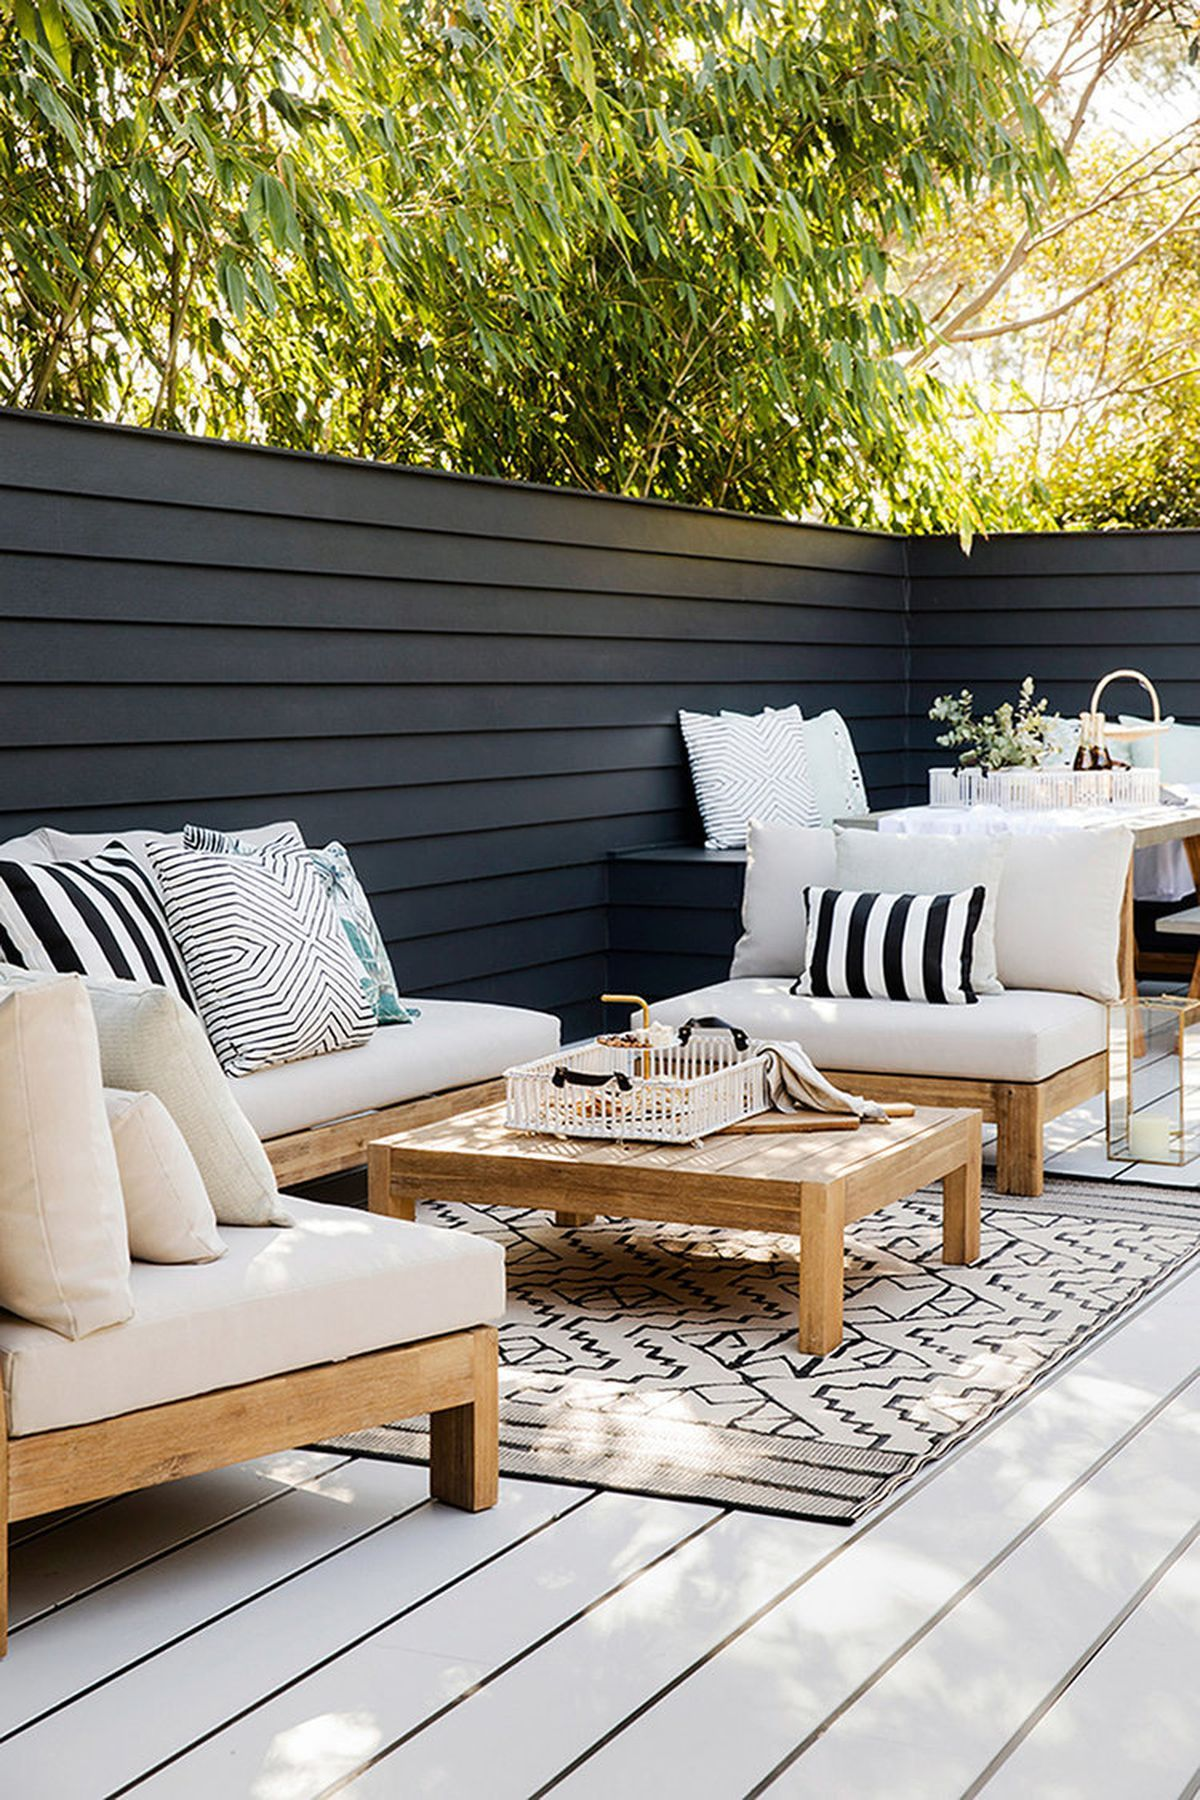 Seven Home Design Trends Set To Be Big In 2019 9homes Outdoor Rooms Outdoor Furniture Ideas Backyards Outdoor Living Space